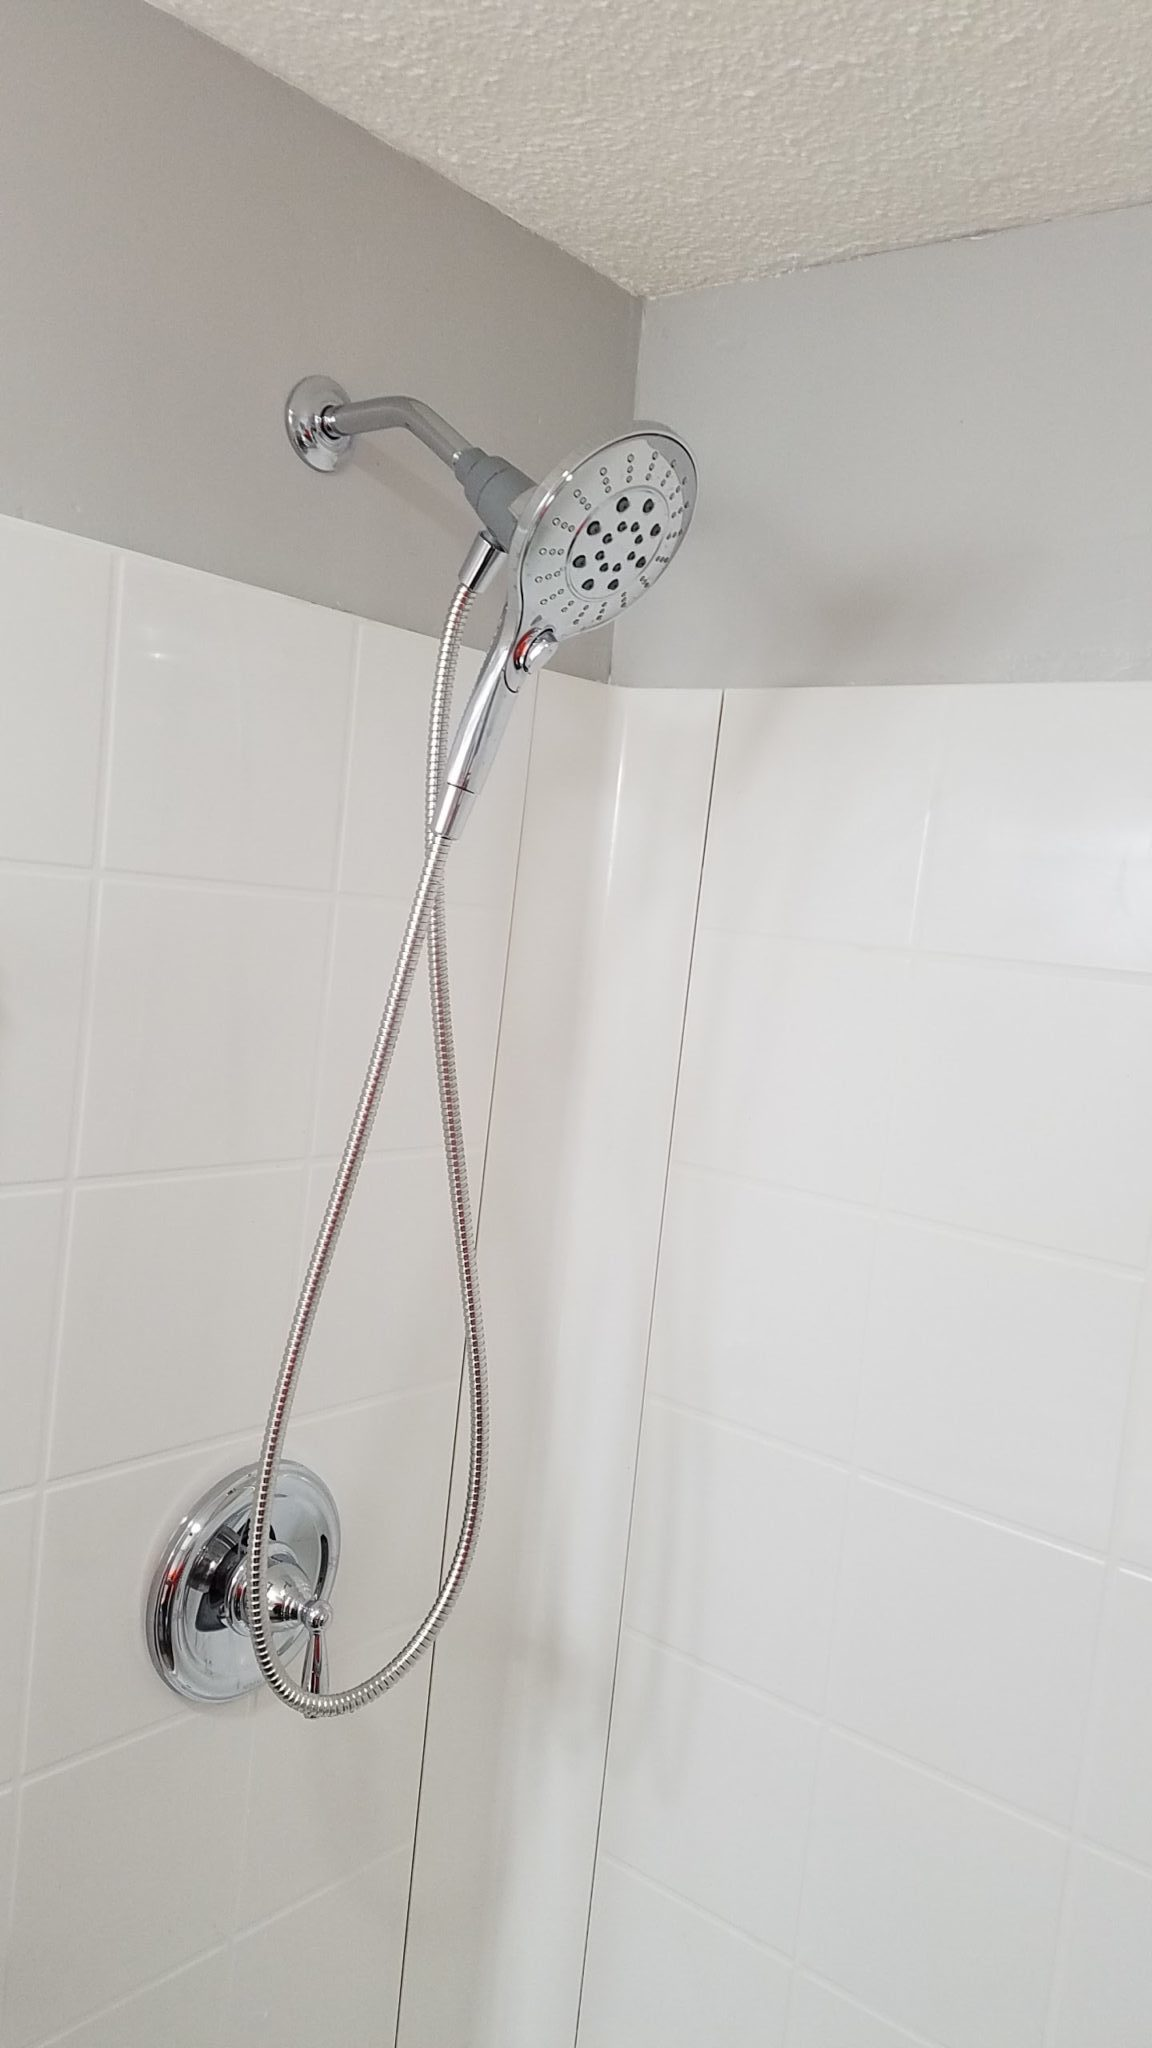 Bathroom Remodel - New Shower Head